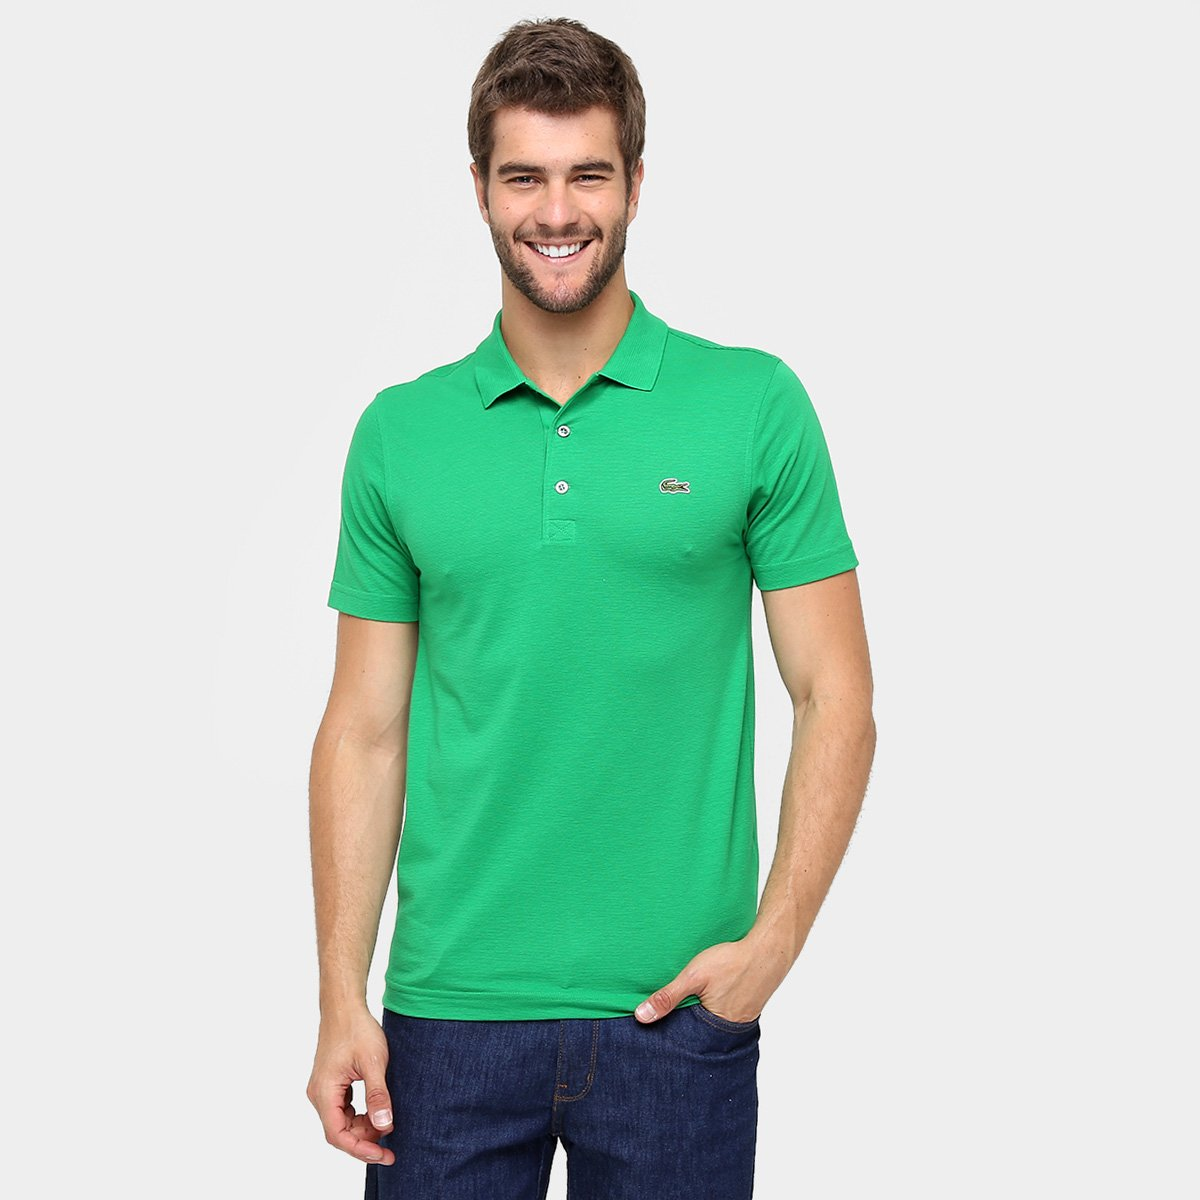 Camisa Polo Lacoste Super Light Masculina - Verde e Branco - Compre ... e33138a8be